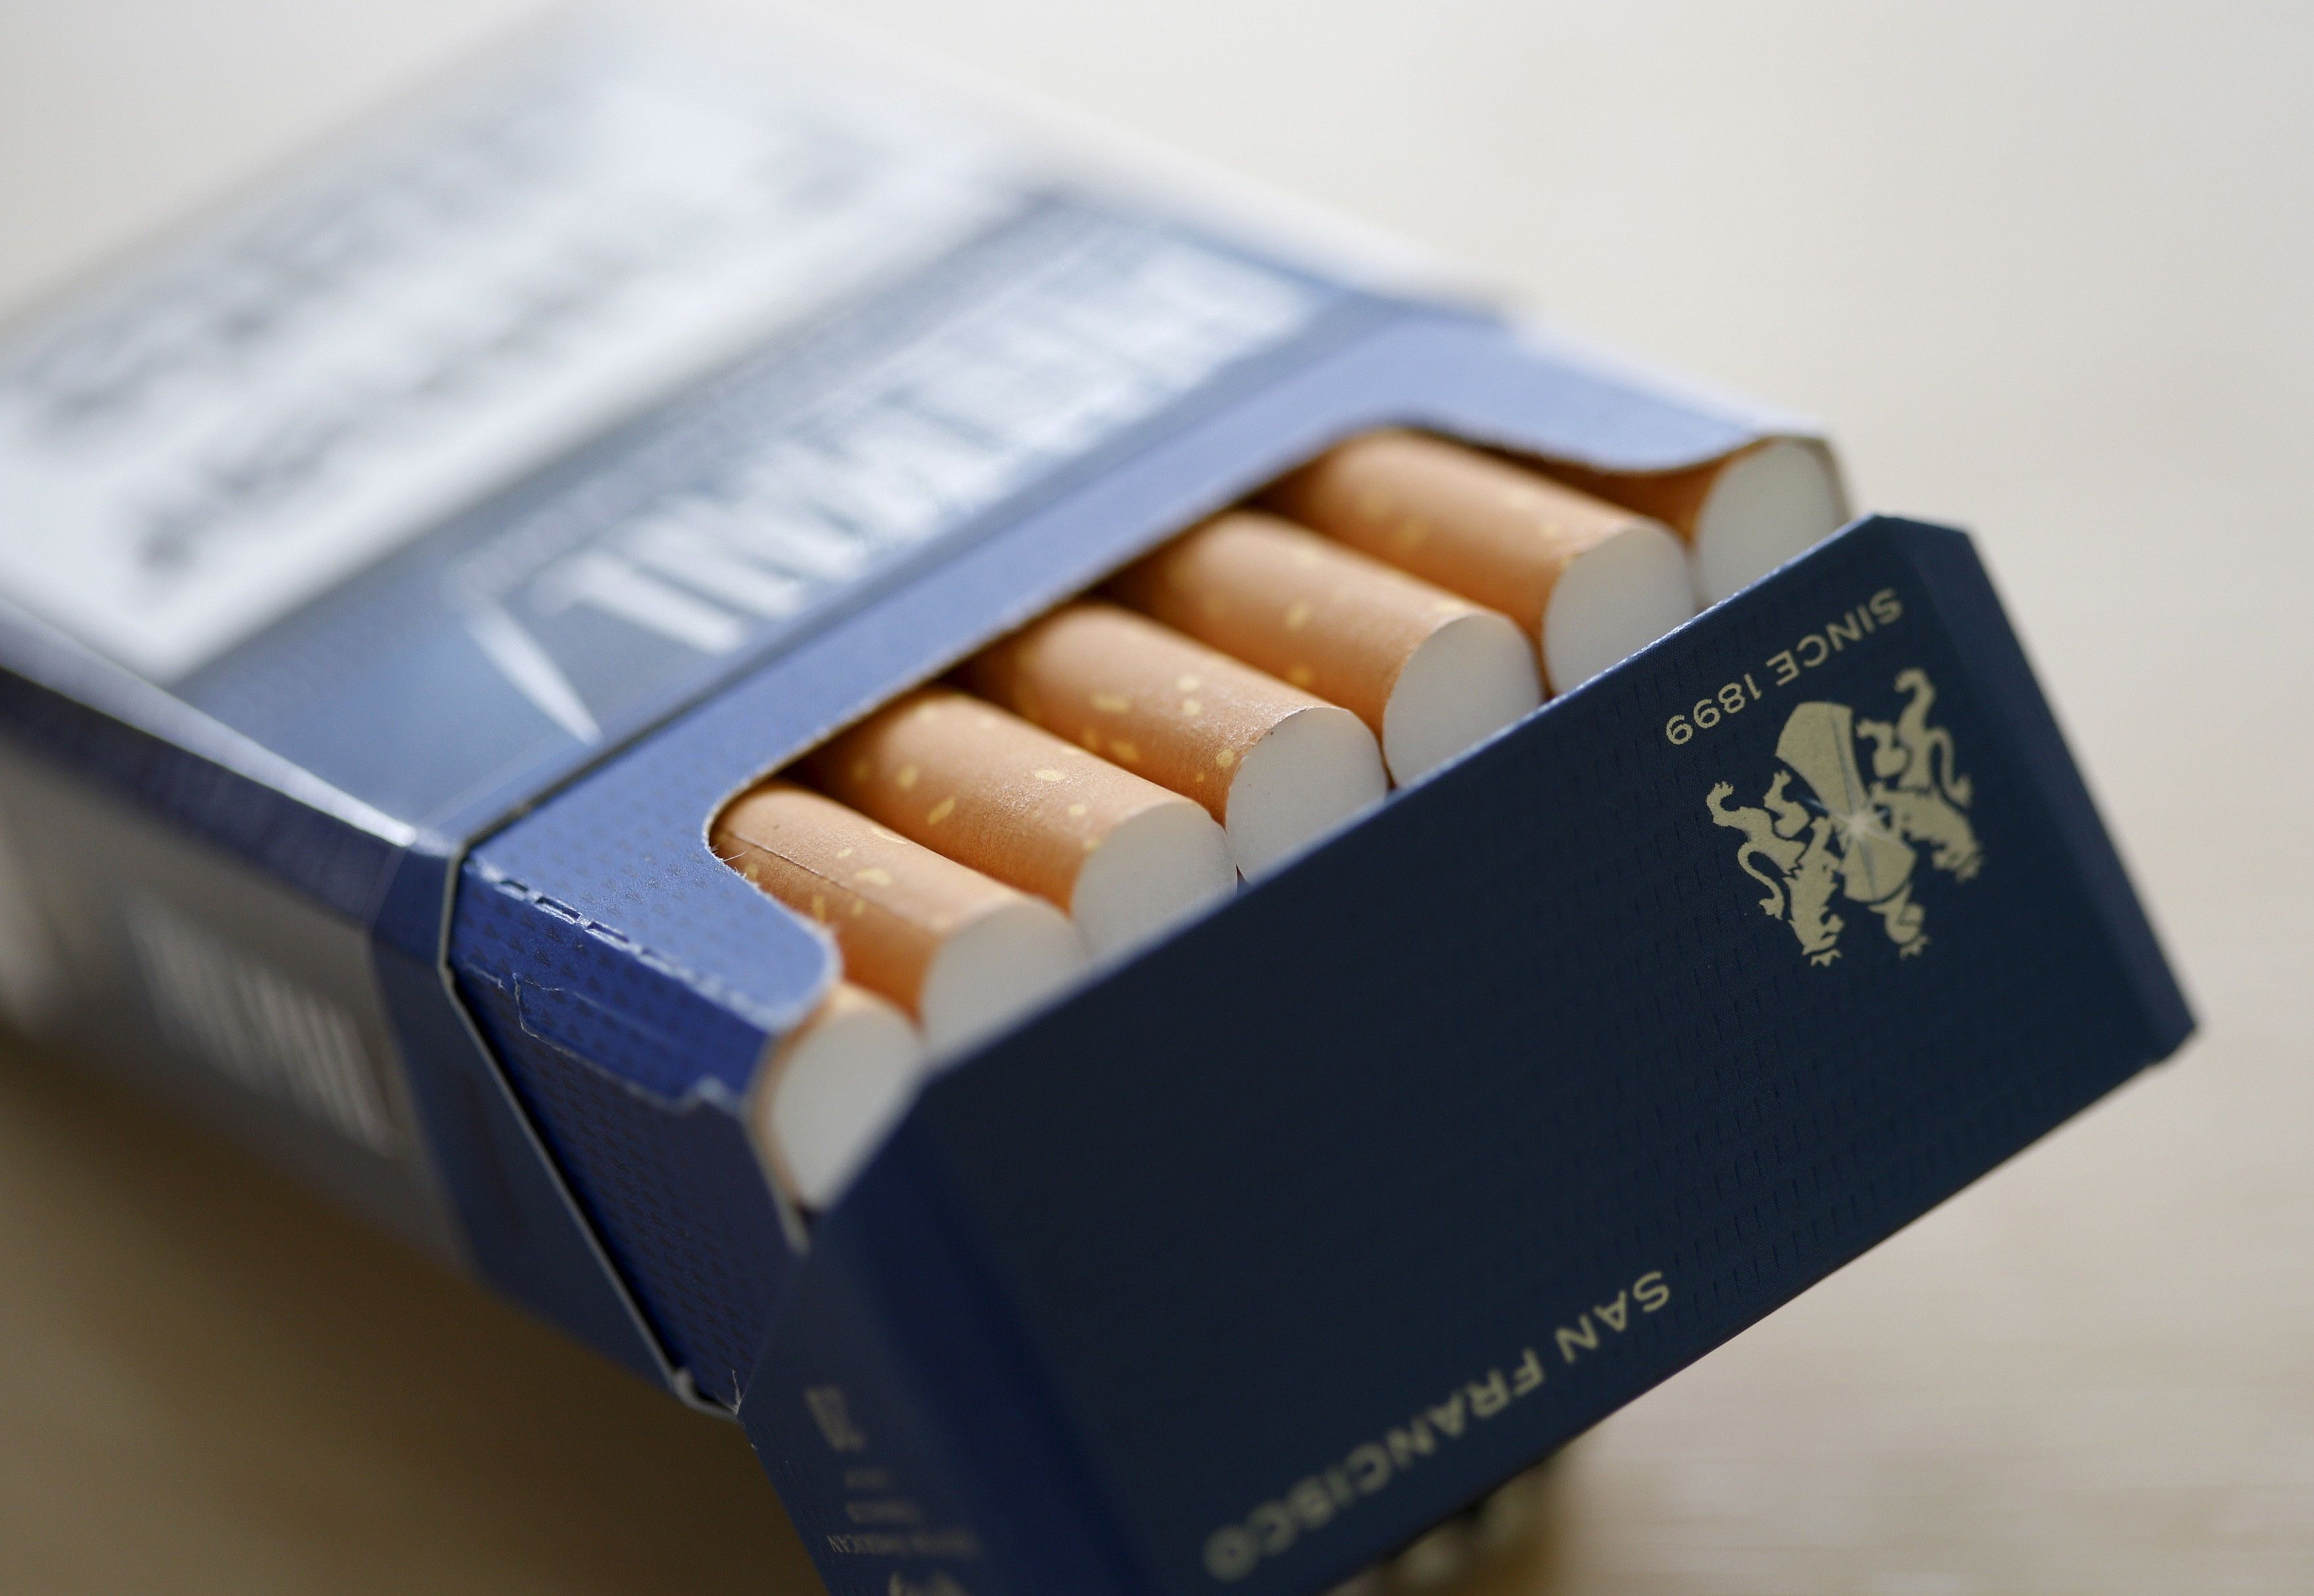 Can you buy Marlboro cigarettes in Wyoming